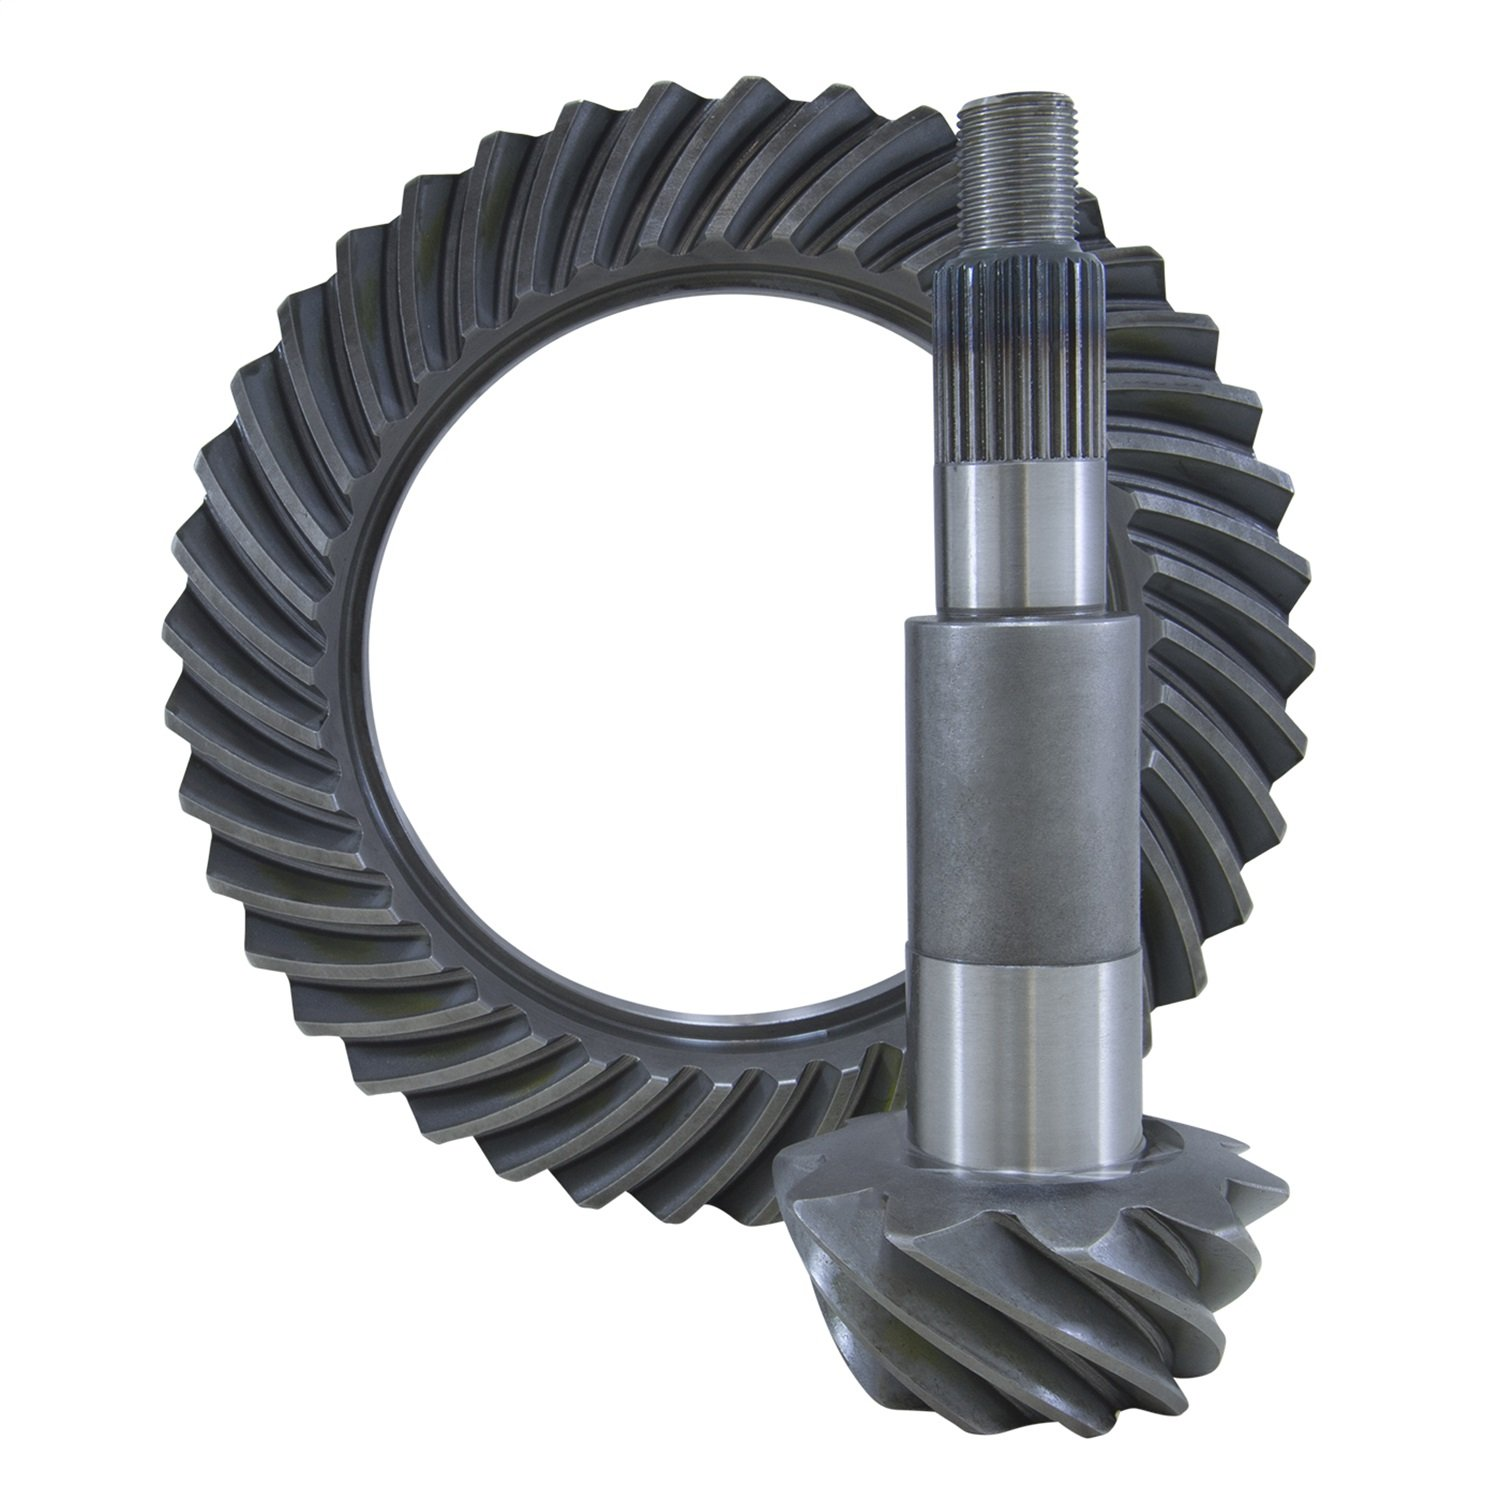 USA Standard Gear ZG D60R-538R-T Replacement Ring /& Pinion Gear Set for Dana 60 Reverse Rotation Differential